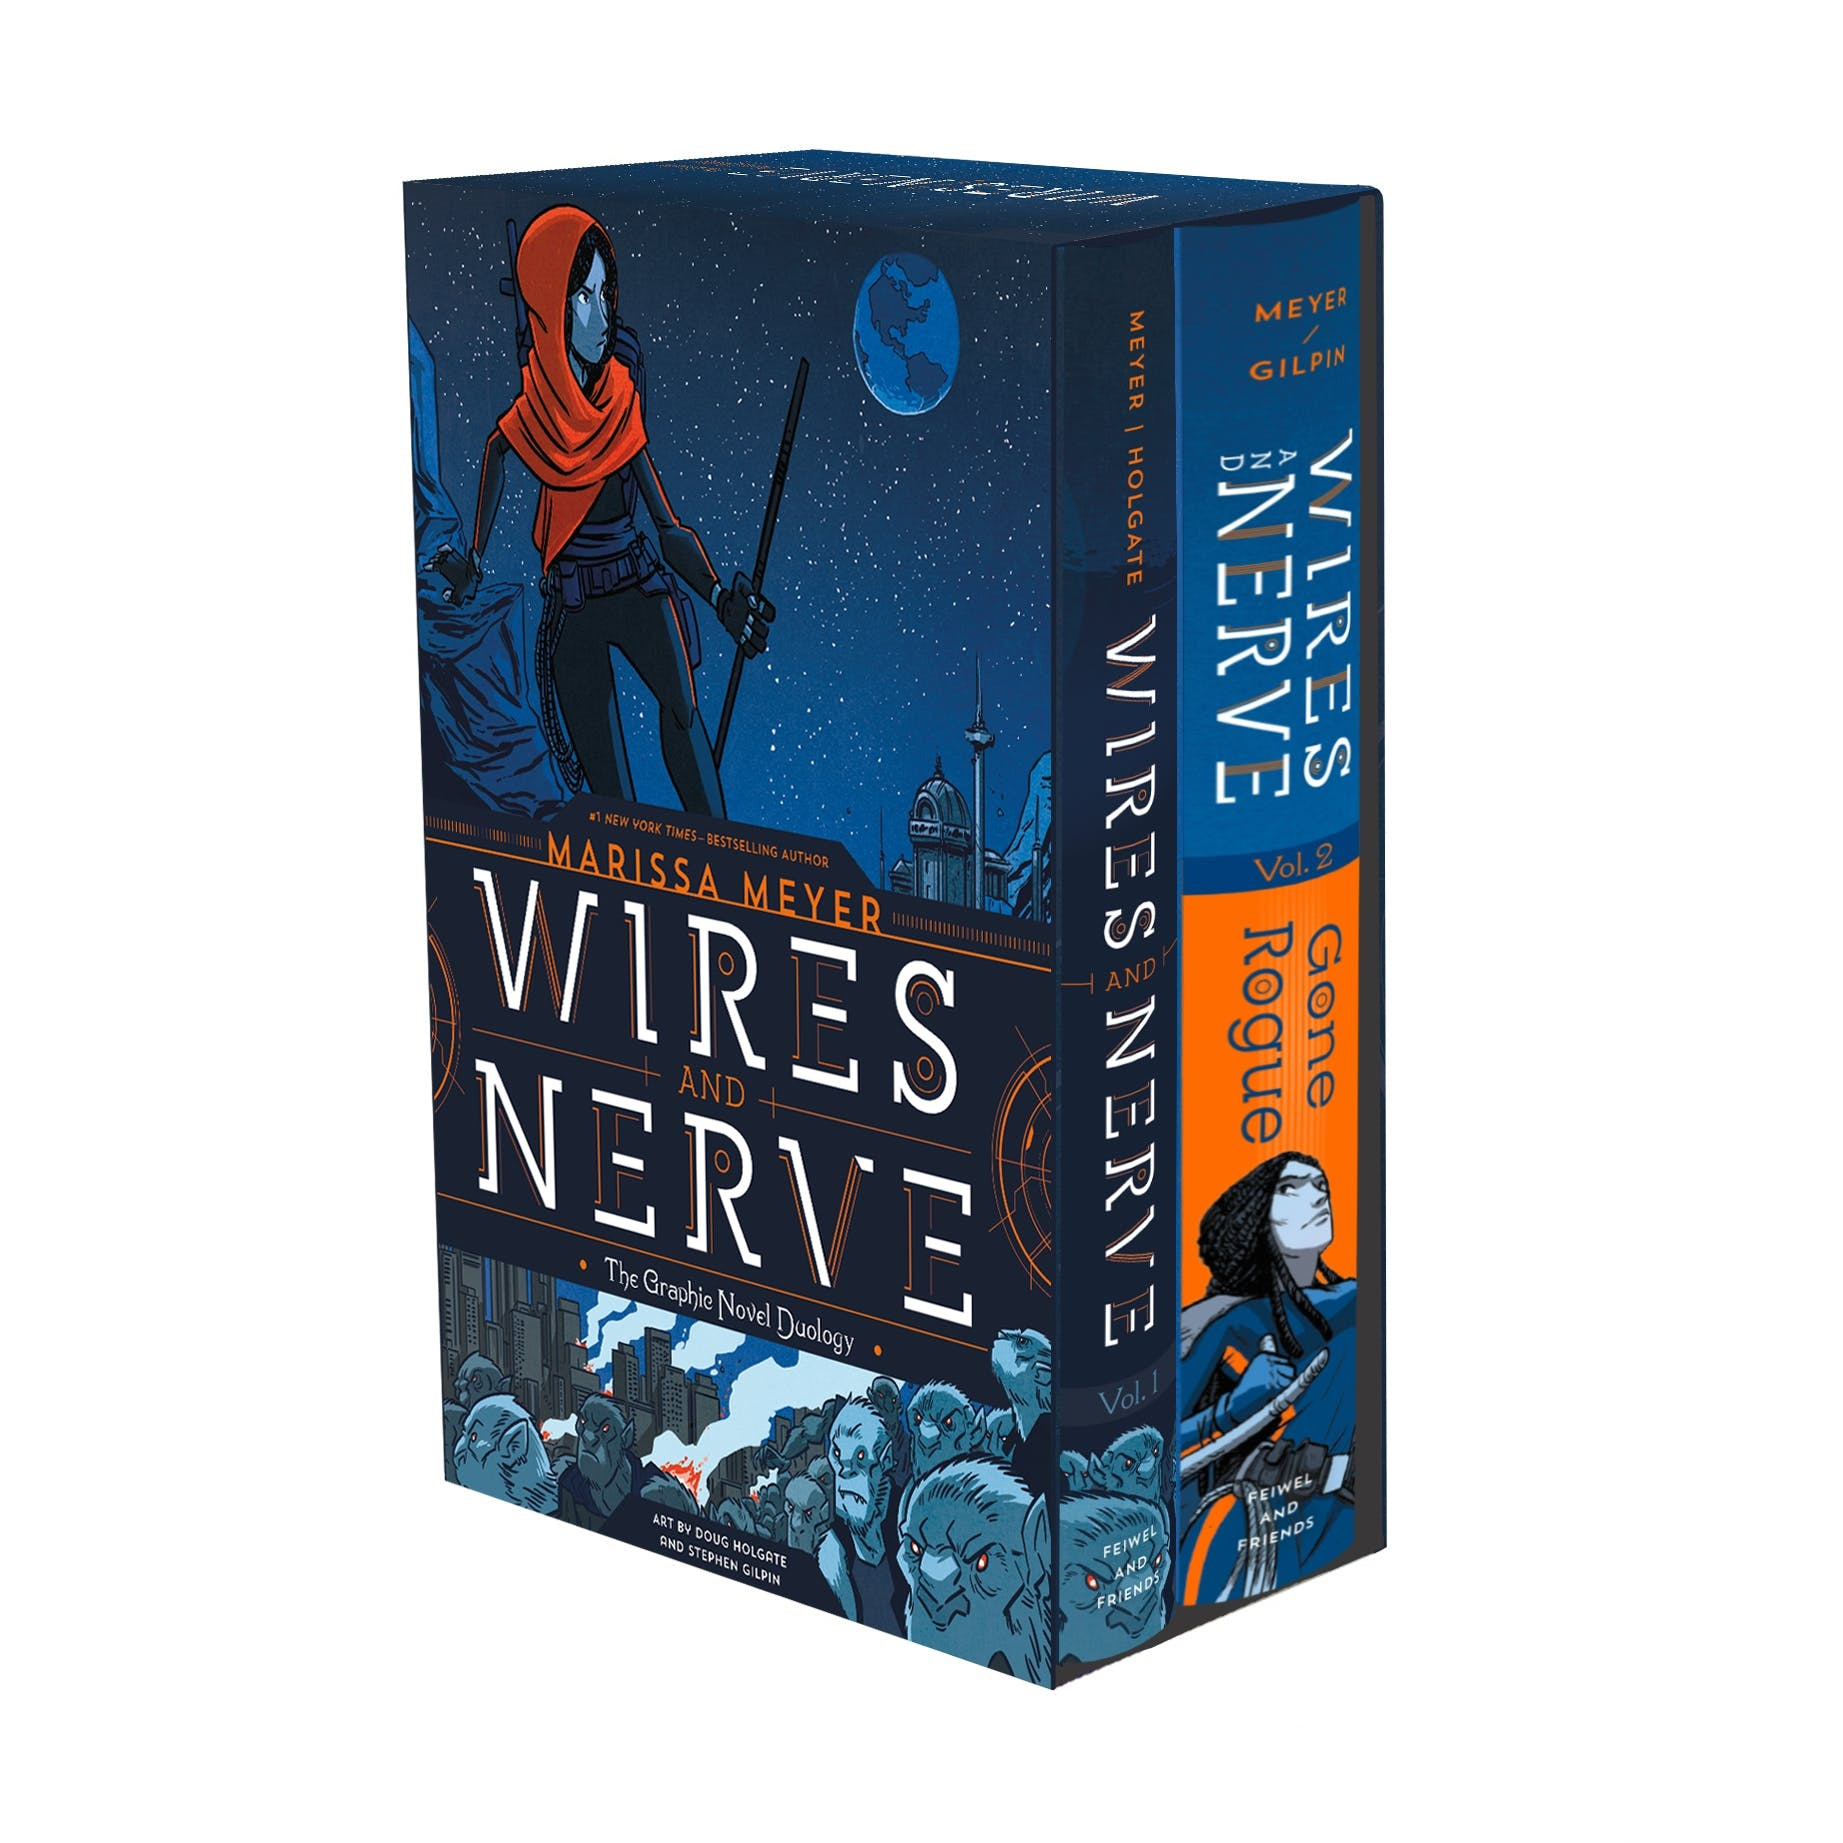 Image of Wires and Nerve: The Graphic Novel Duology Boxed Set